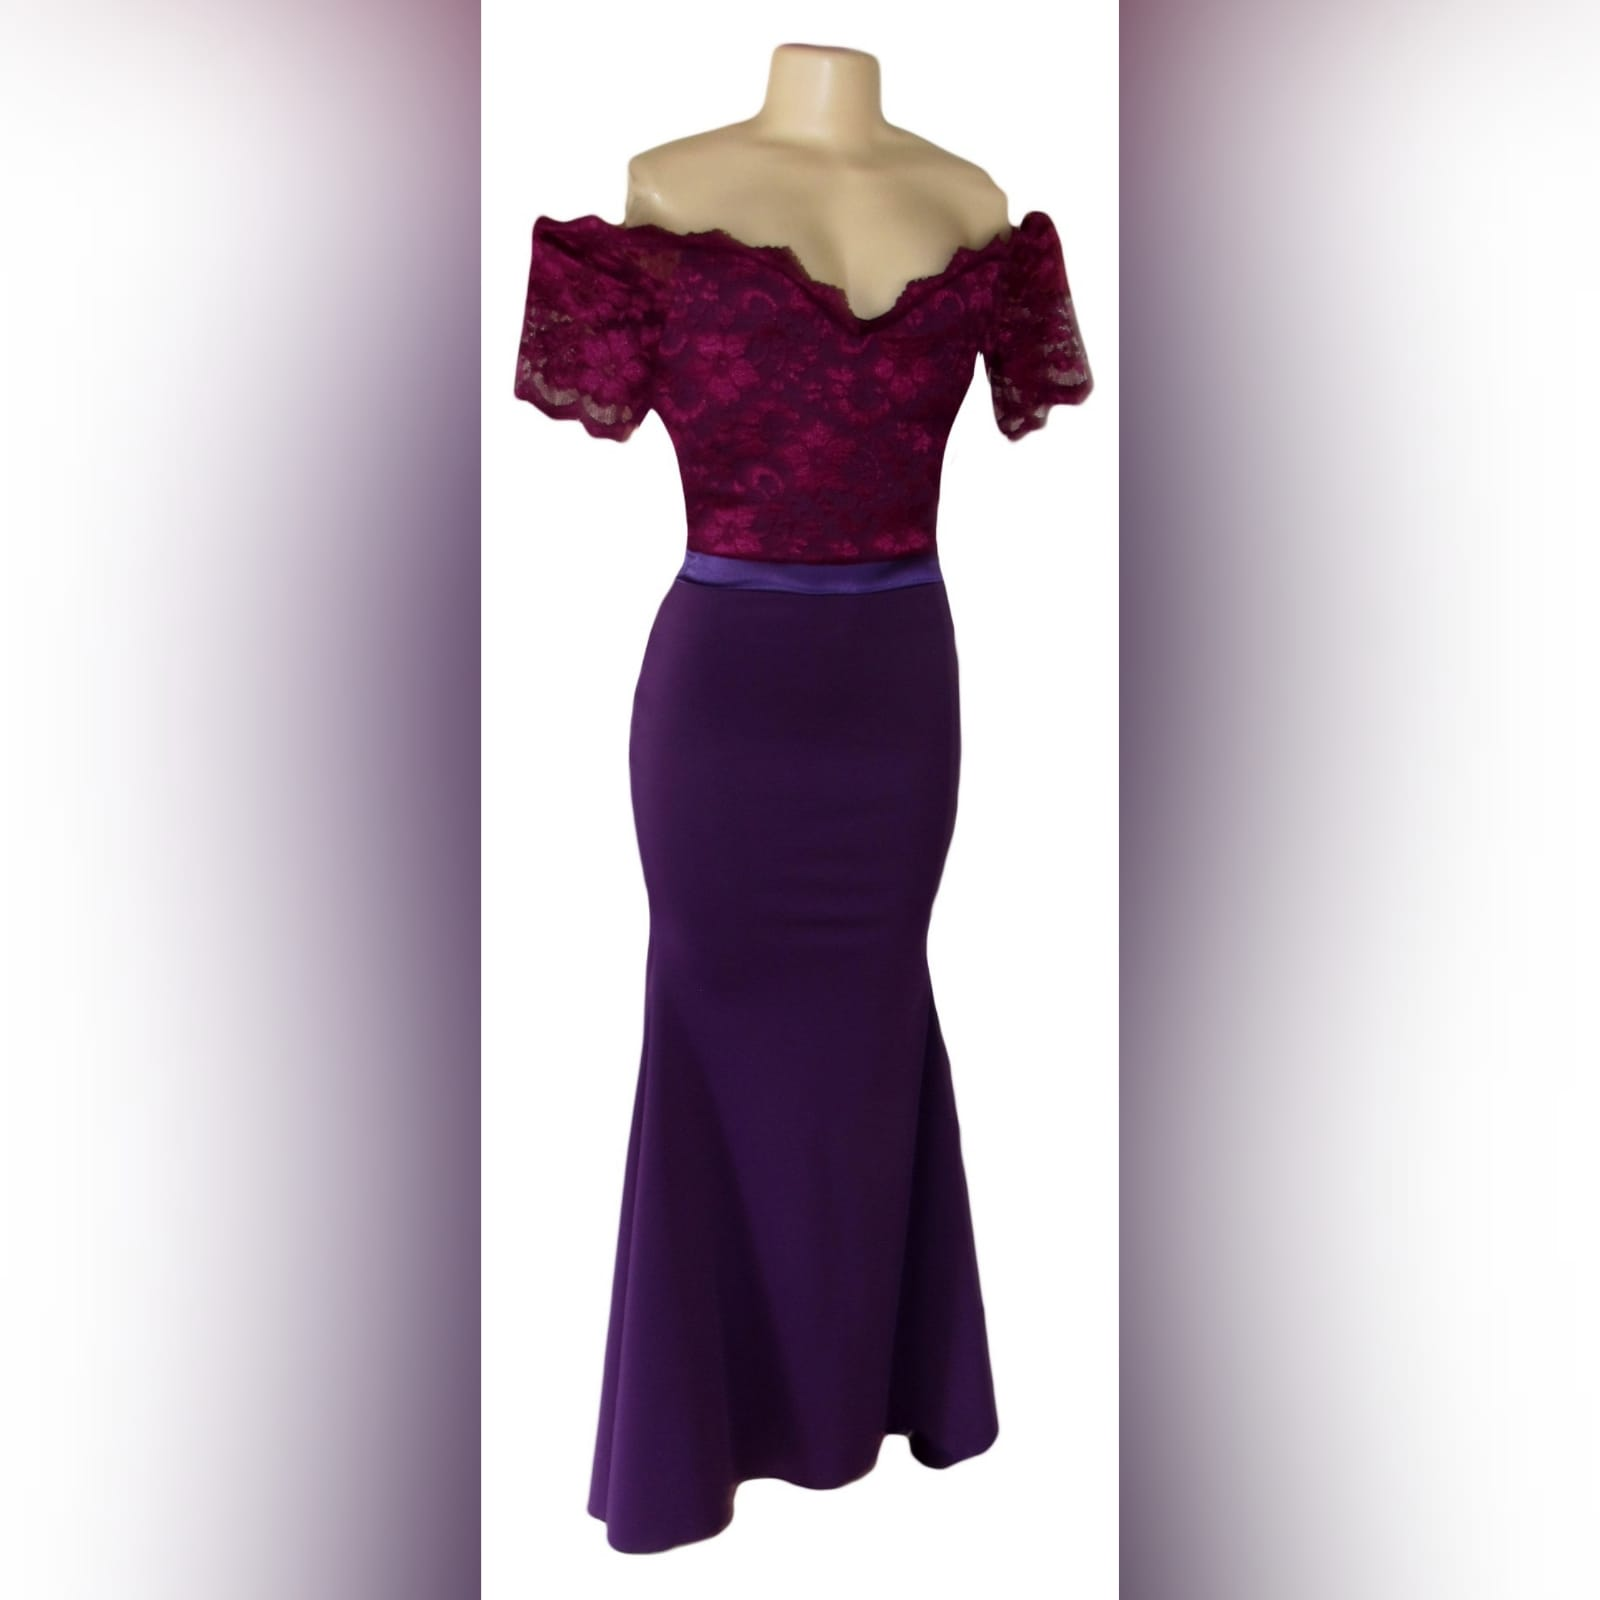 Off shoulder 2 tone purple soft mermaid bridesmaid dress 1 off shoulder 2 tone purple soft mermaid bridesmaid dress with a lace bodice. Detailed with a satin belt and buttons.